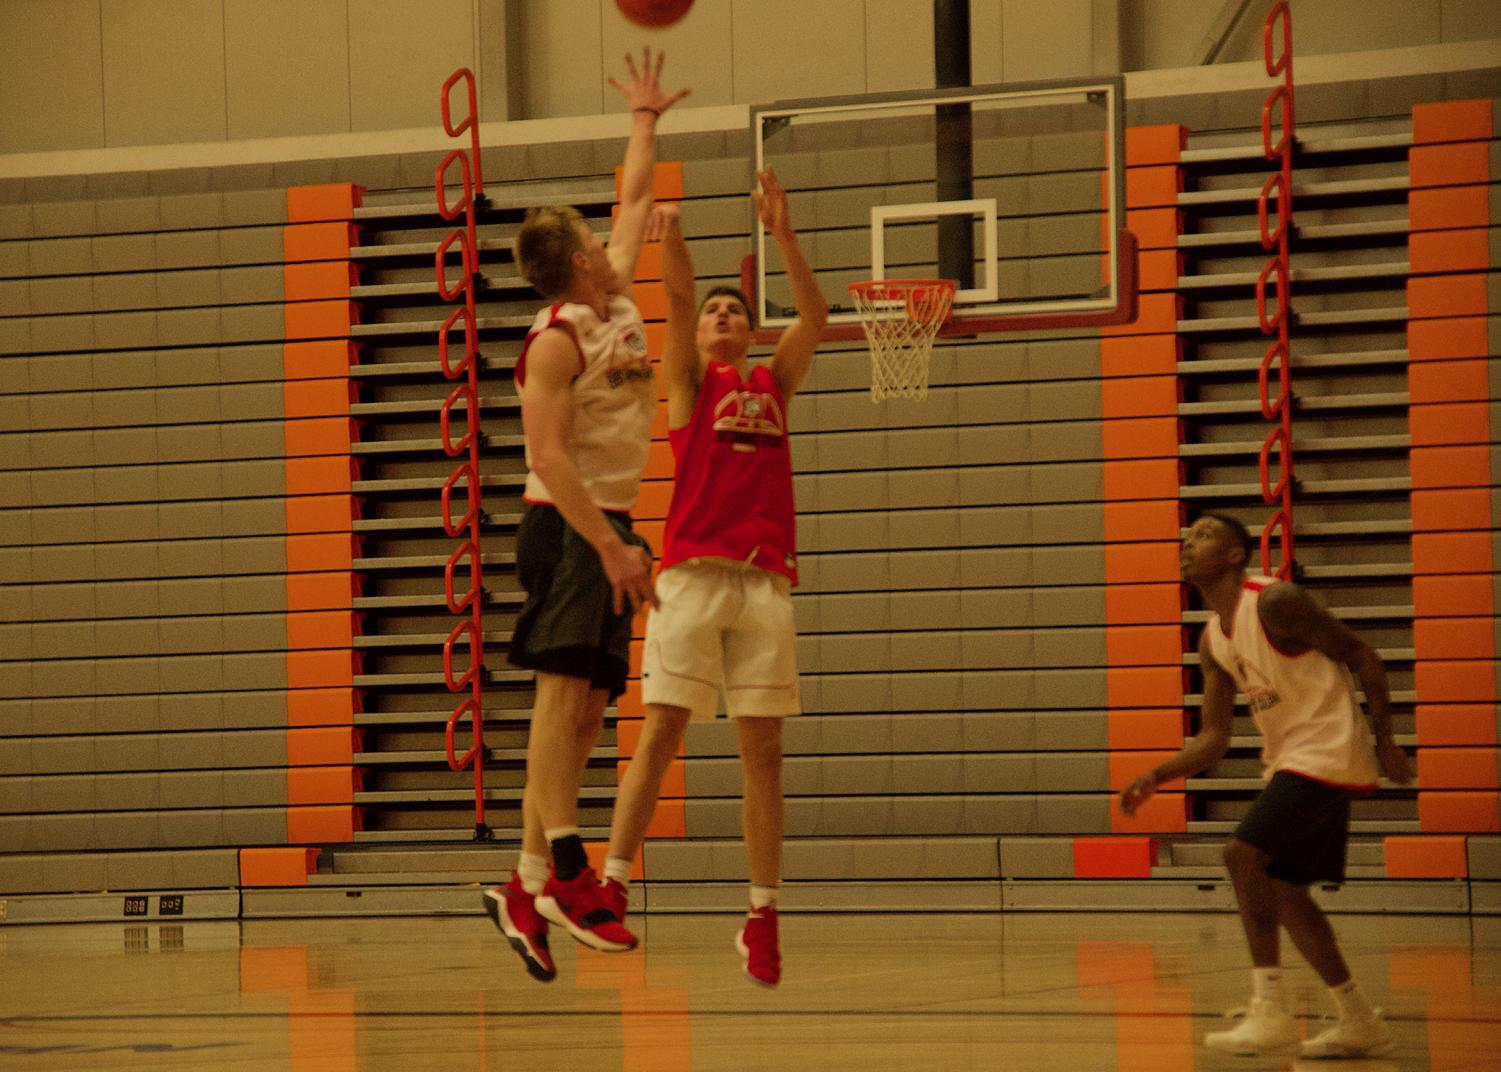 Bolles (middle, red) launches a shot during practice.